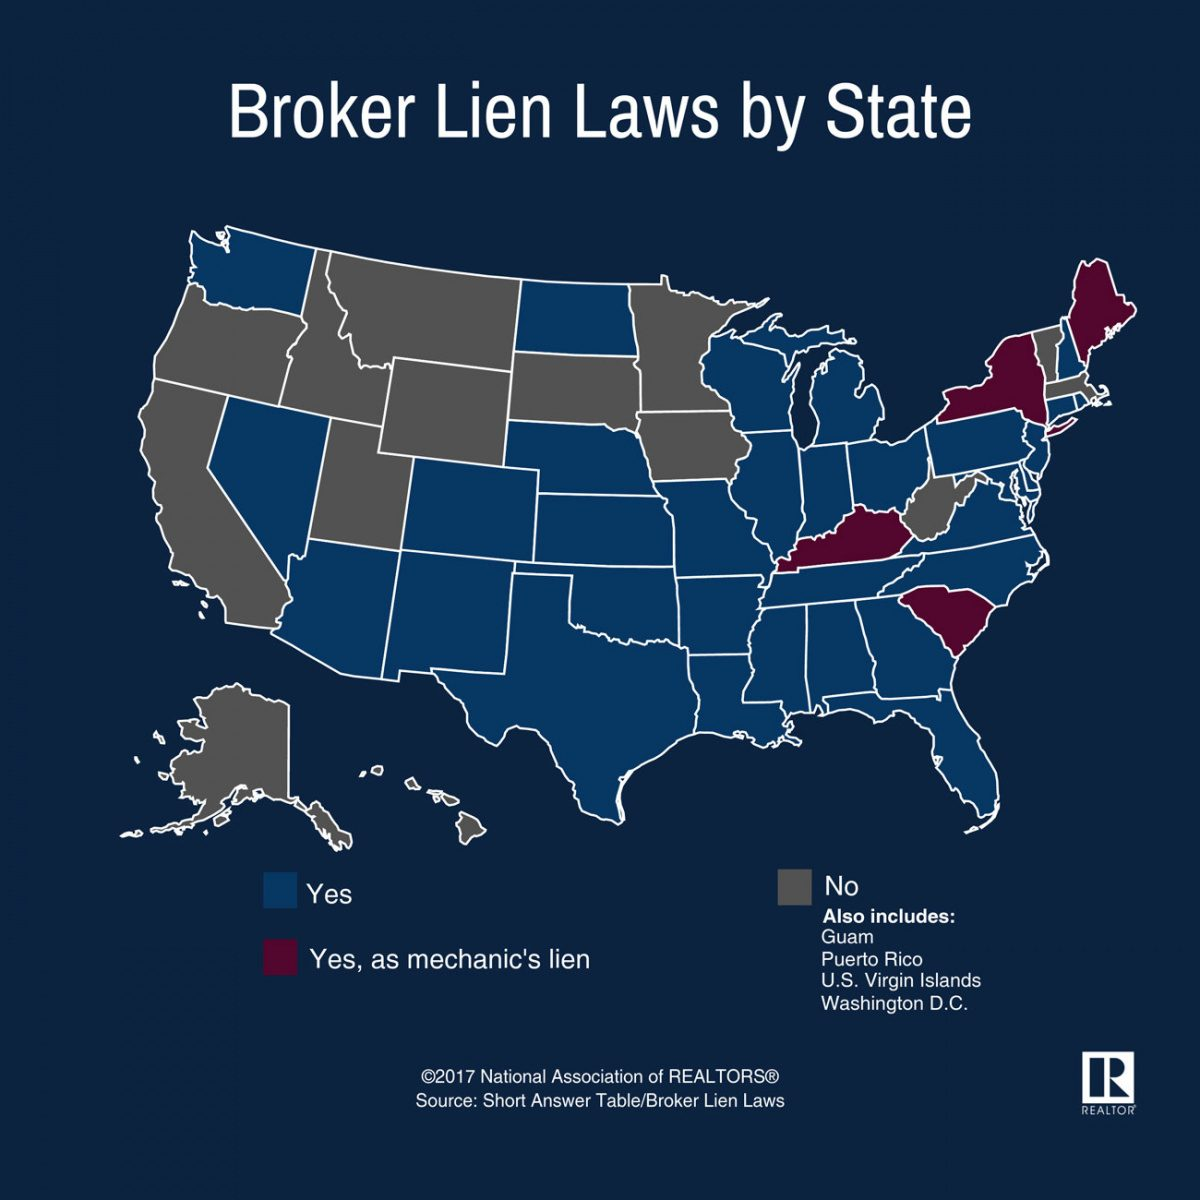 Broker Lien Laws by State